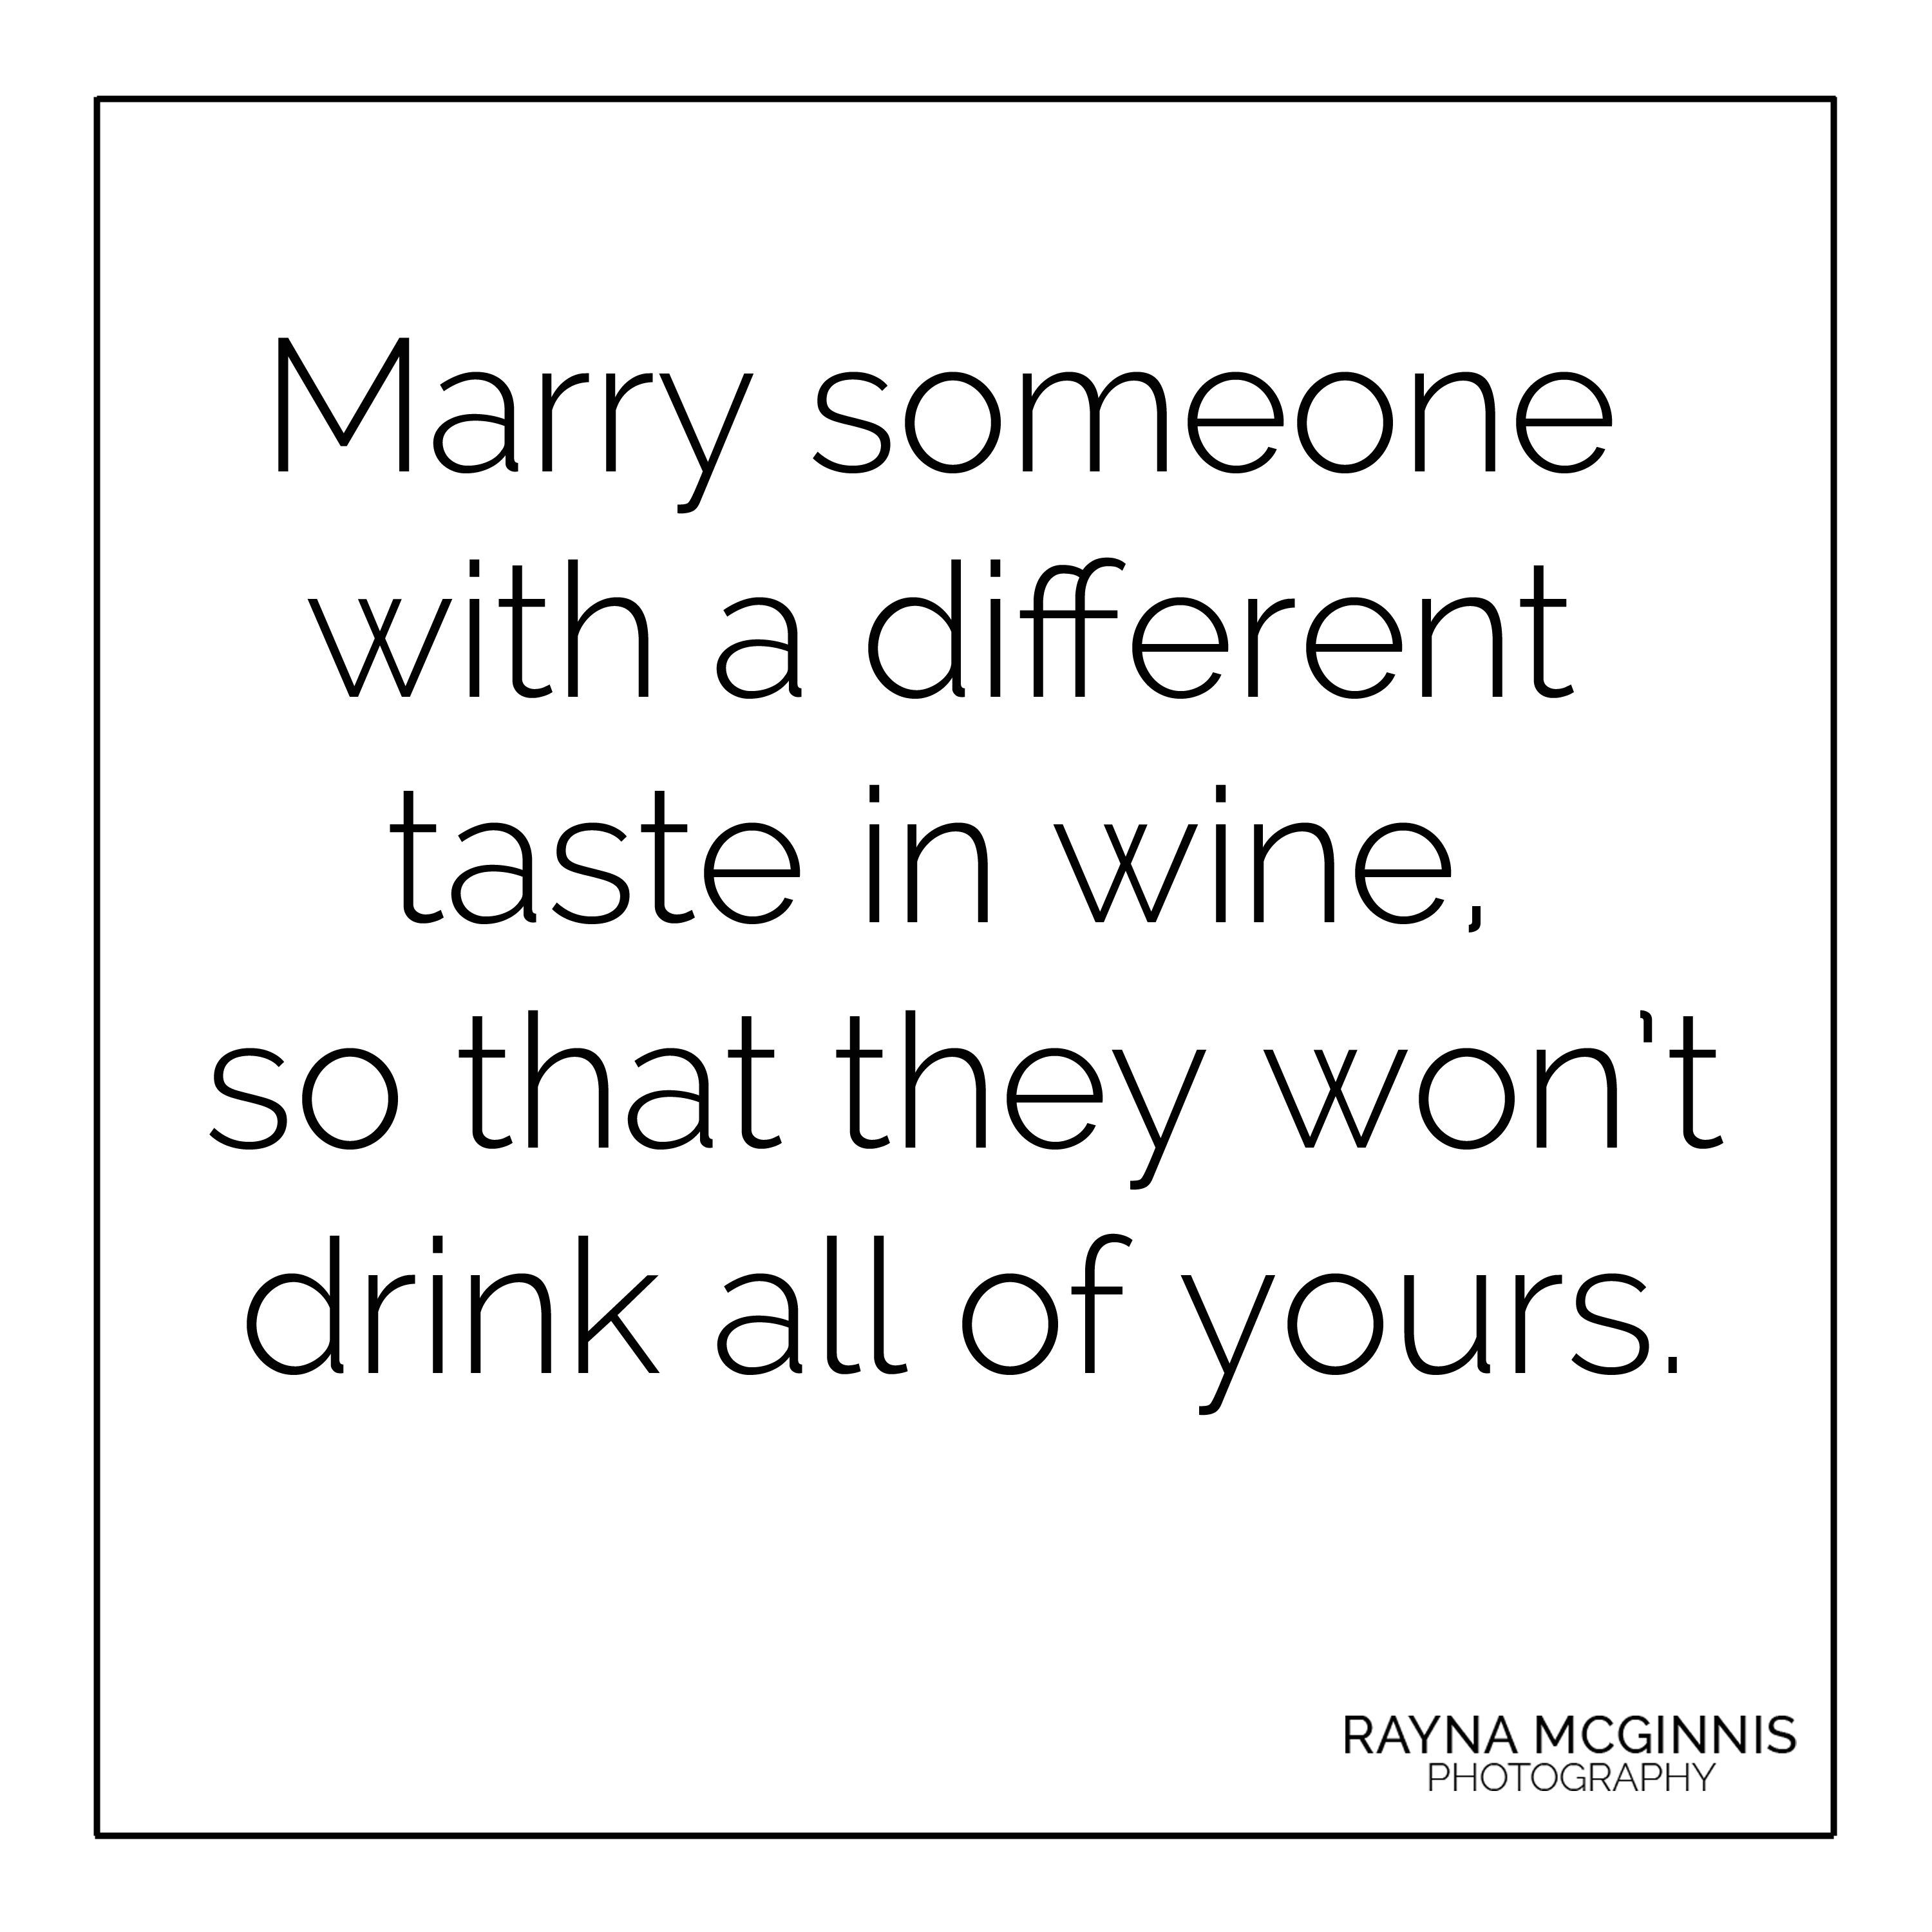 Wine Love Quotes Marry Someone With A Different Taste In Wine So That They Won't